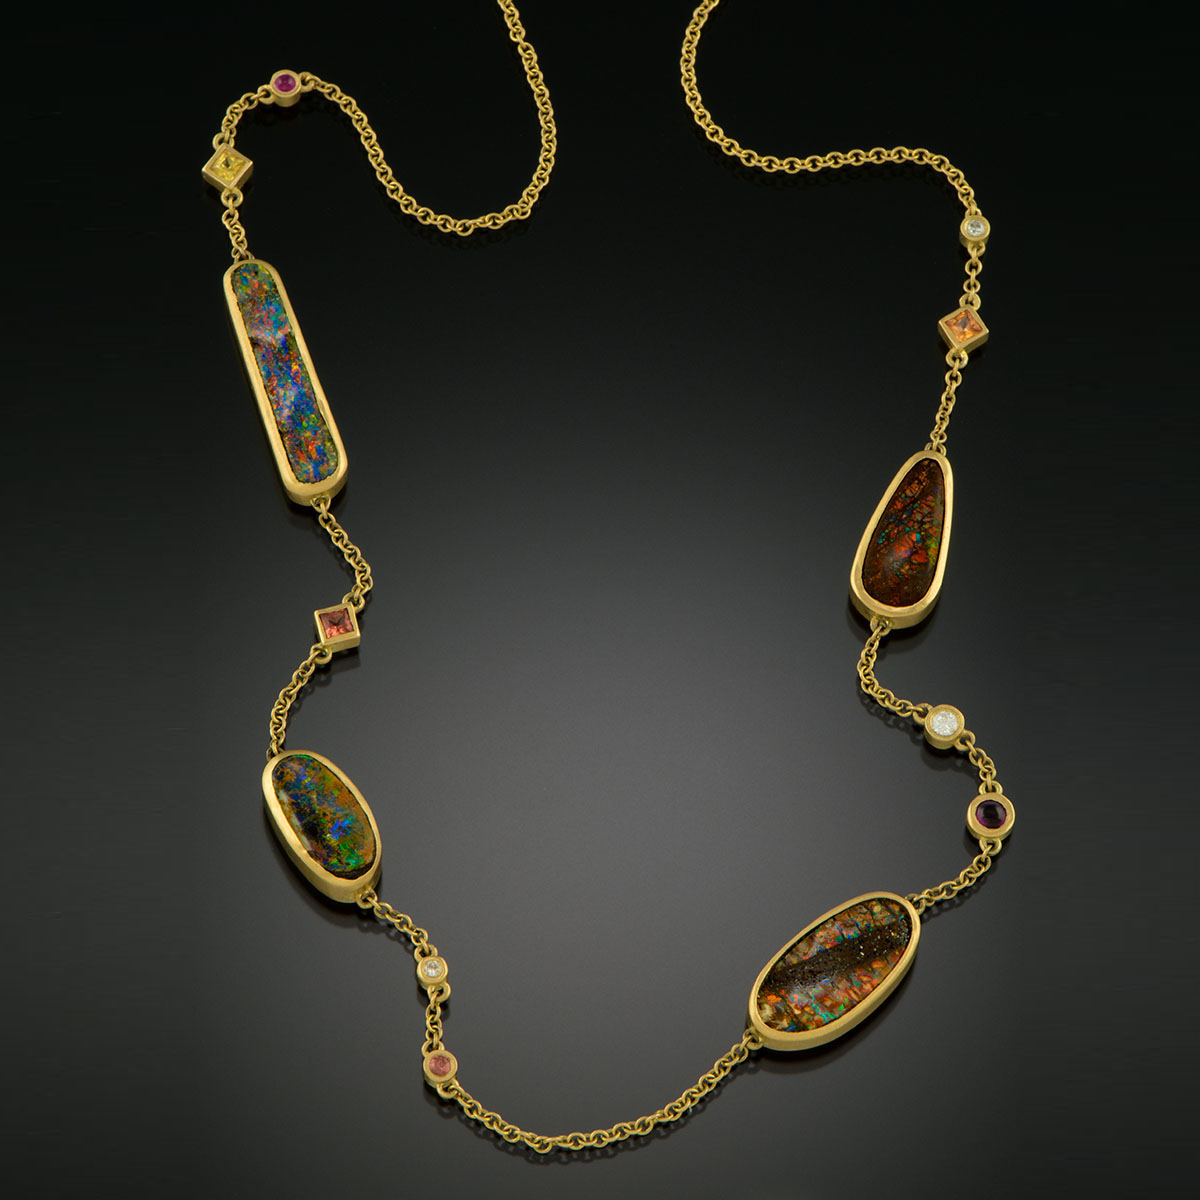 18K brushed yellow gold necklace with gems